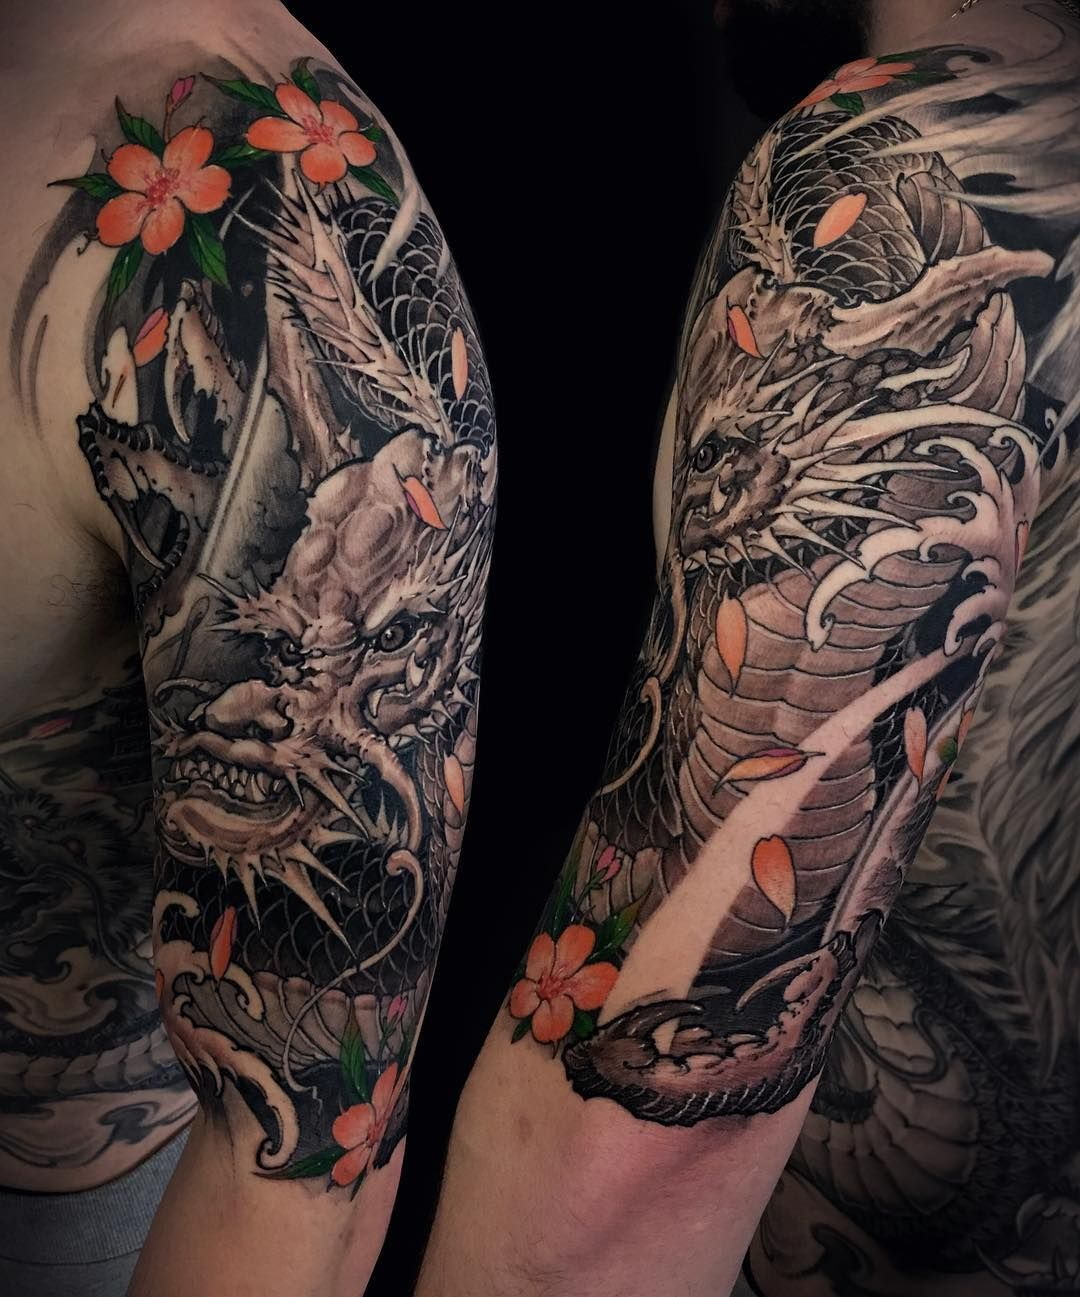 4 368 Likes 44 Comments Tony Hu Tonyhu Chronicink On Instagram Dragon Half Sleeve Fro Half Sleeve Tattoos Black Dragon Sleeve Tattoos Dragon Tattoo Arm